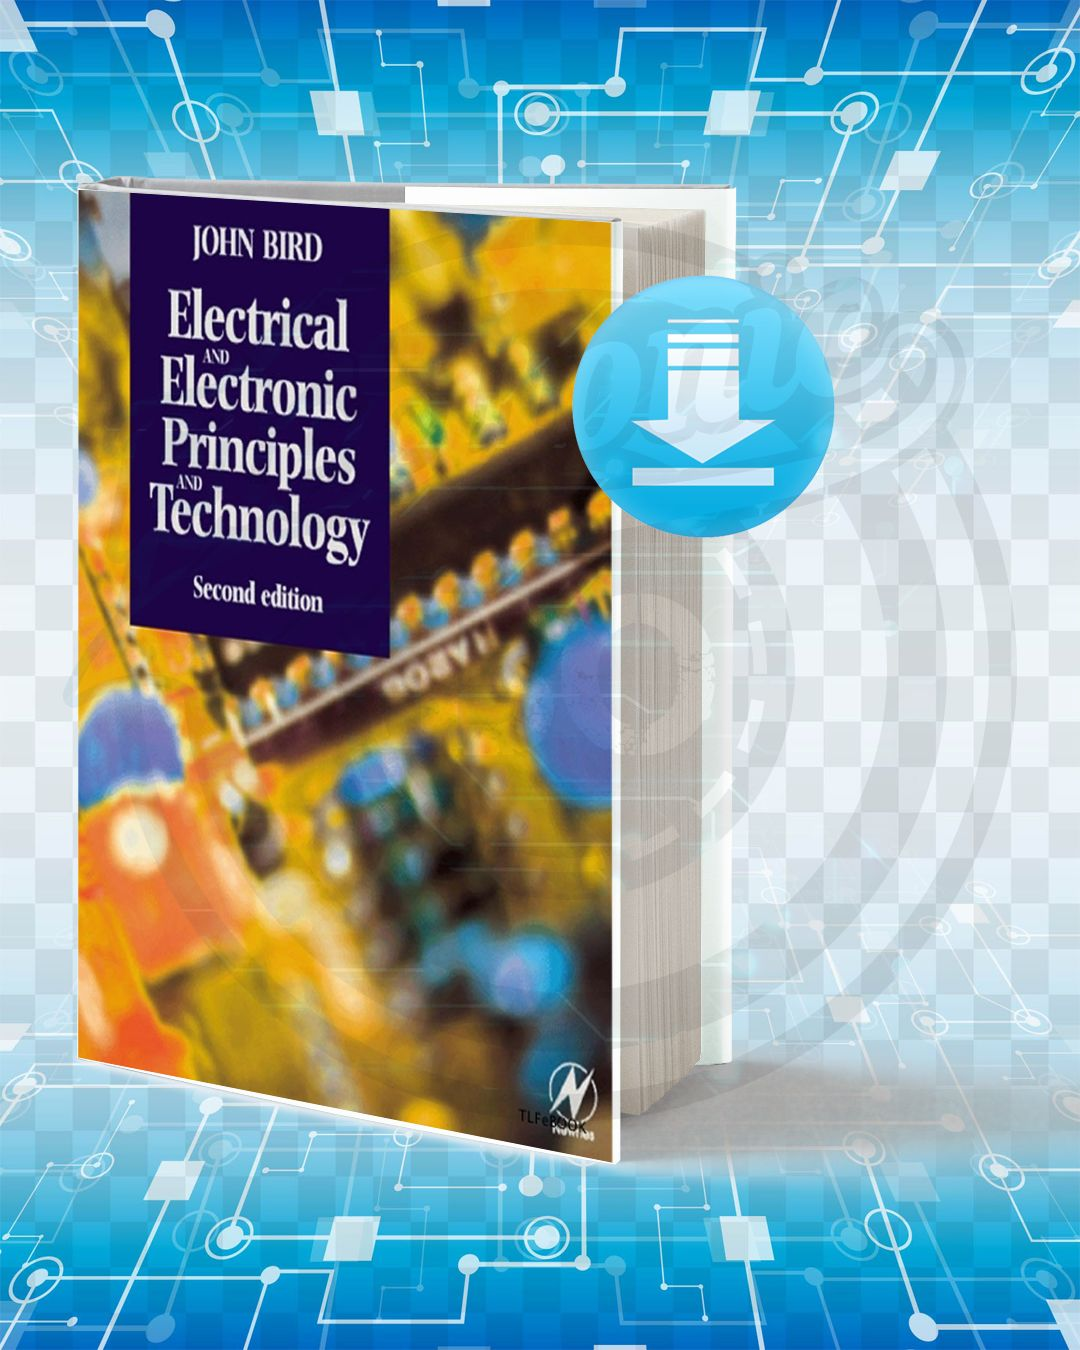 Download Electrical And Electronic Principles And Technology Electrical Engineering Books Machine Learning Book Technology